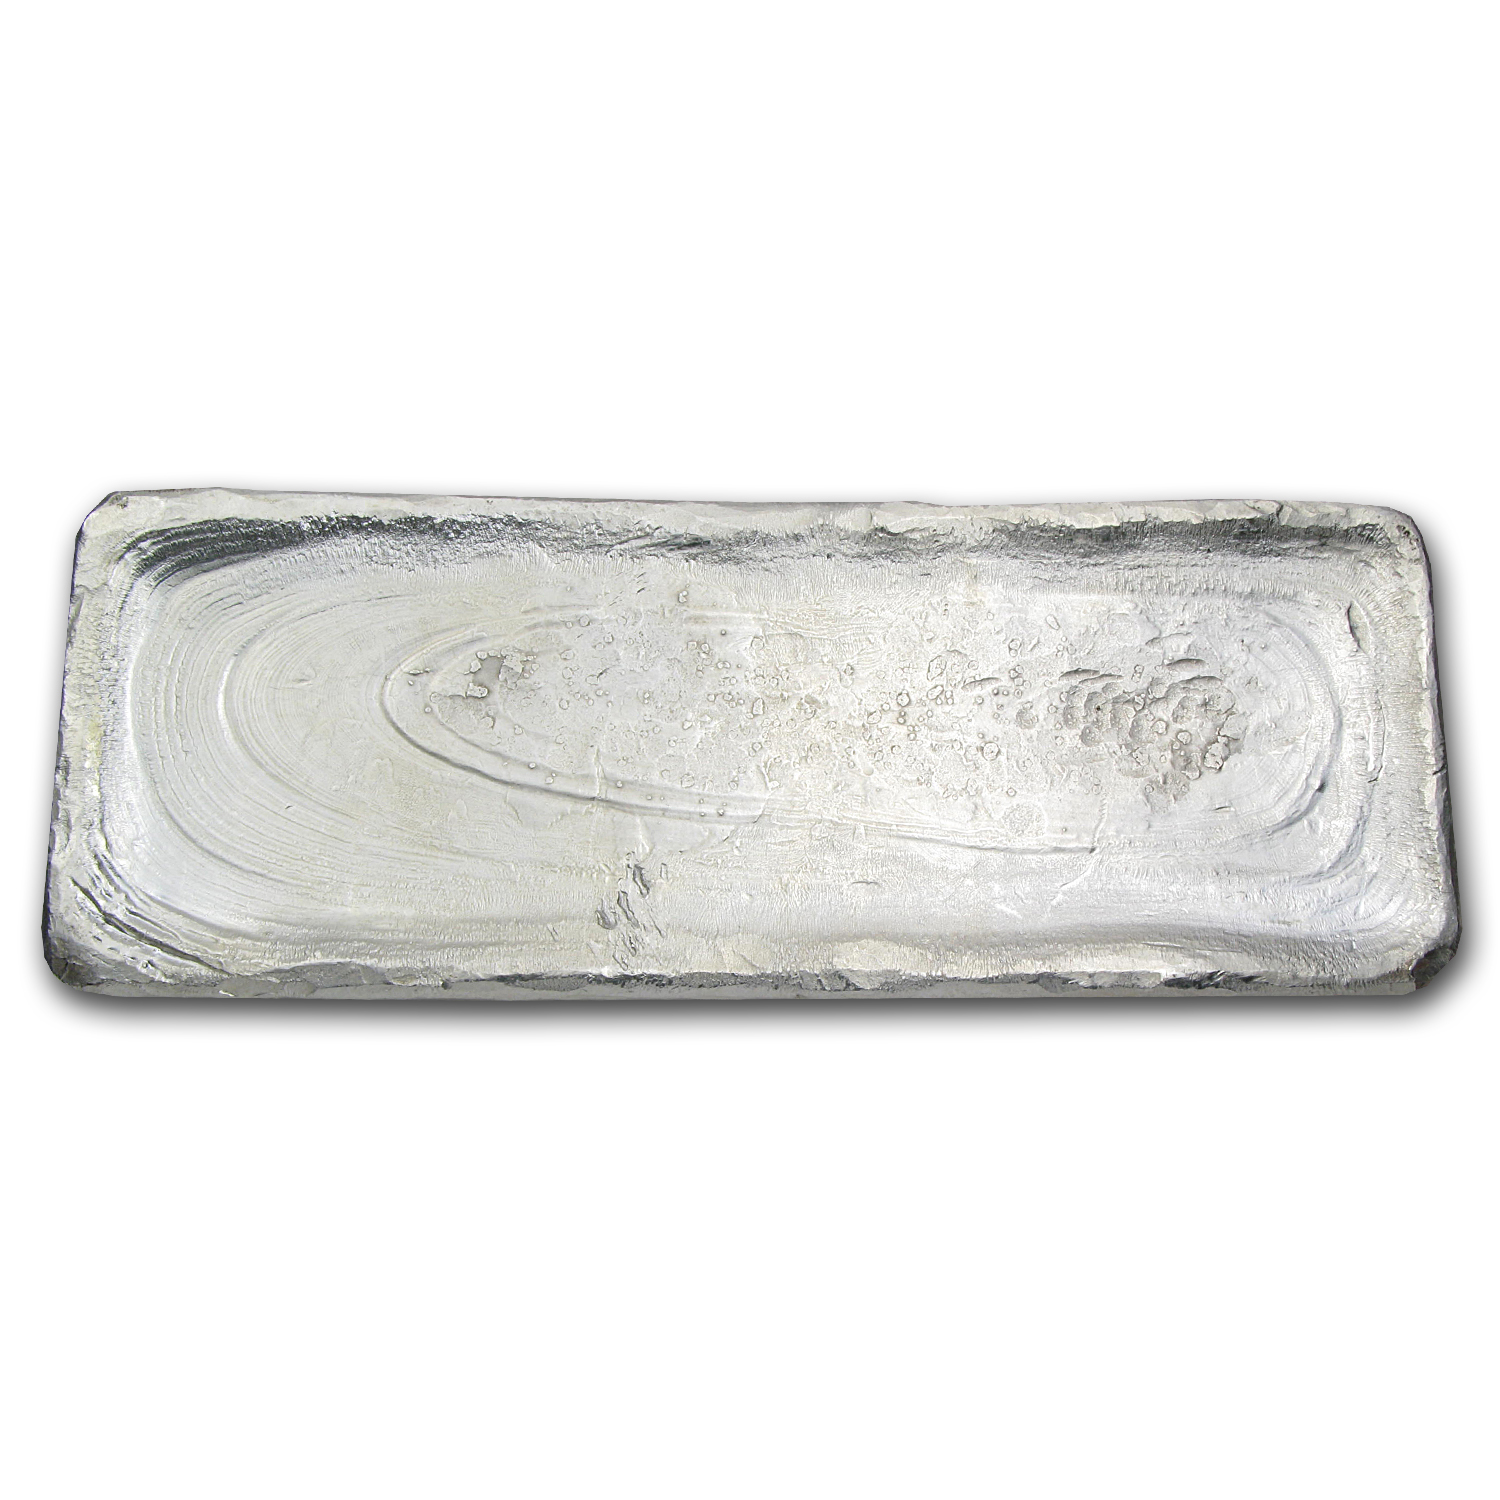 100 oz Silver Bar - Golden Analytical